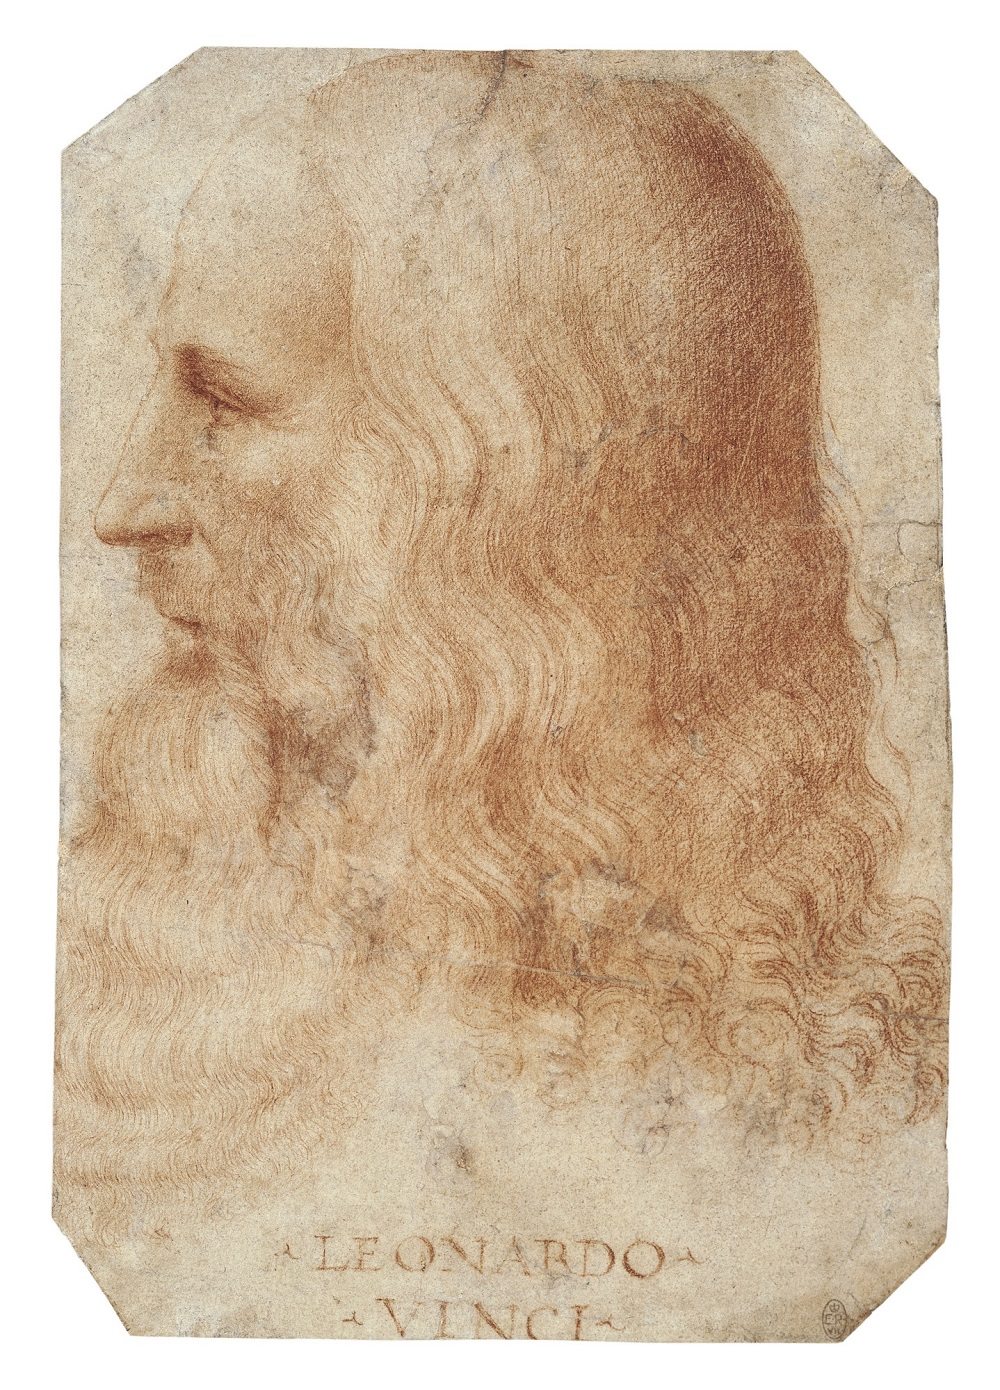 A portrait of Leonardo thought to be by Francesco Melzi